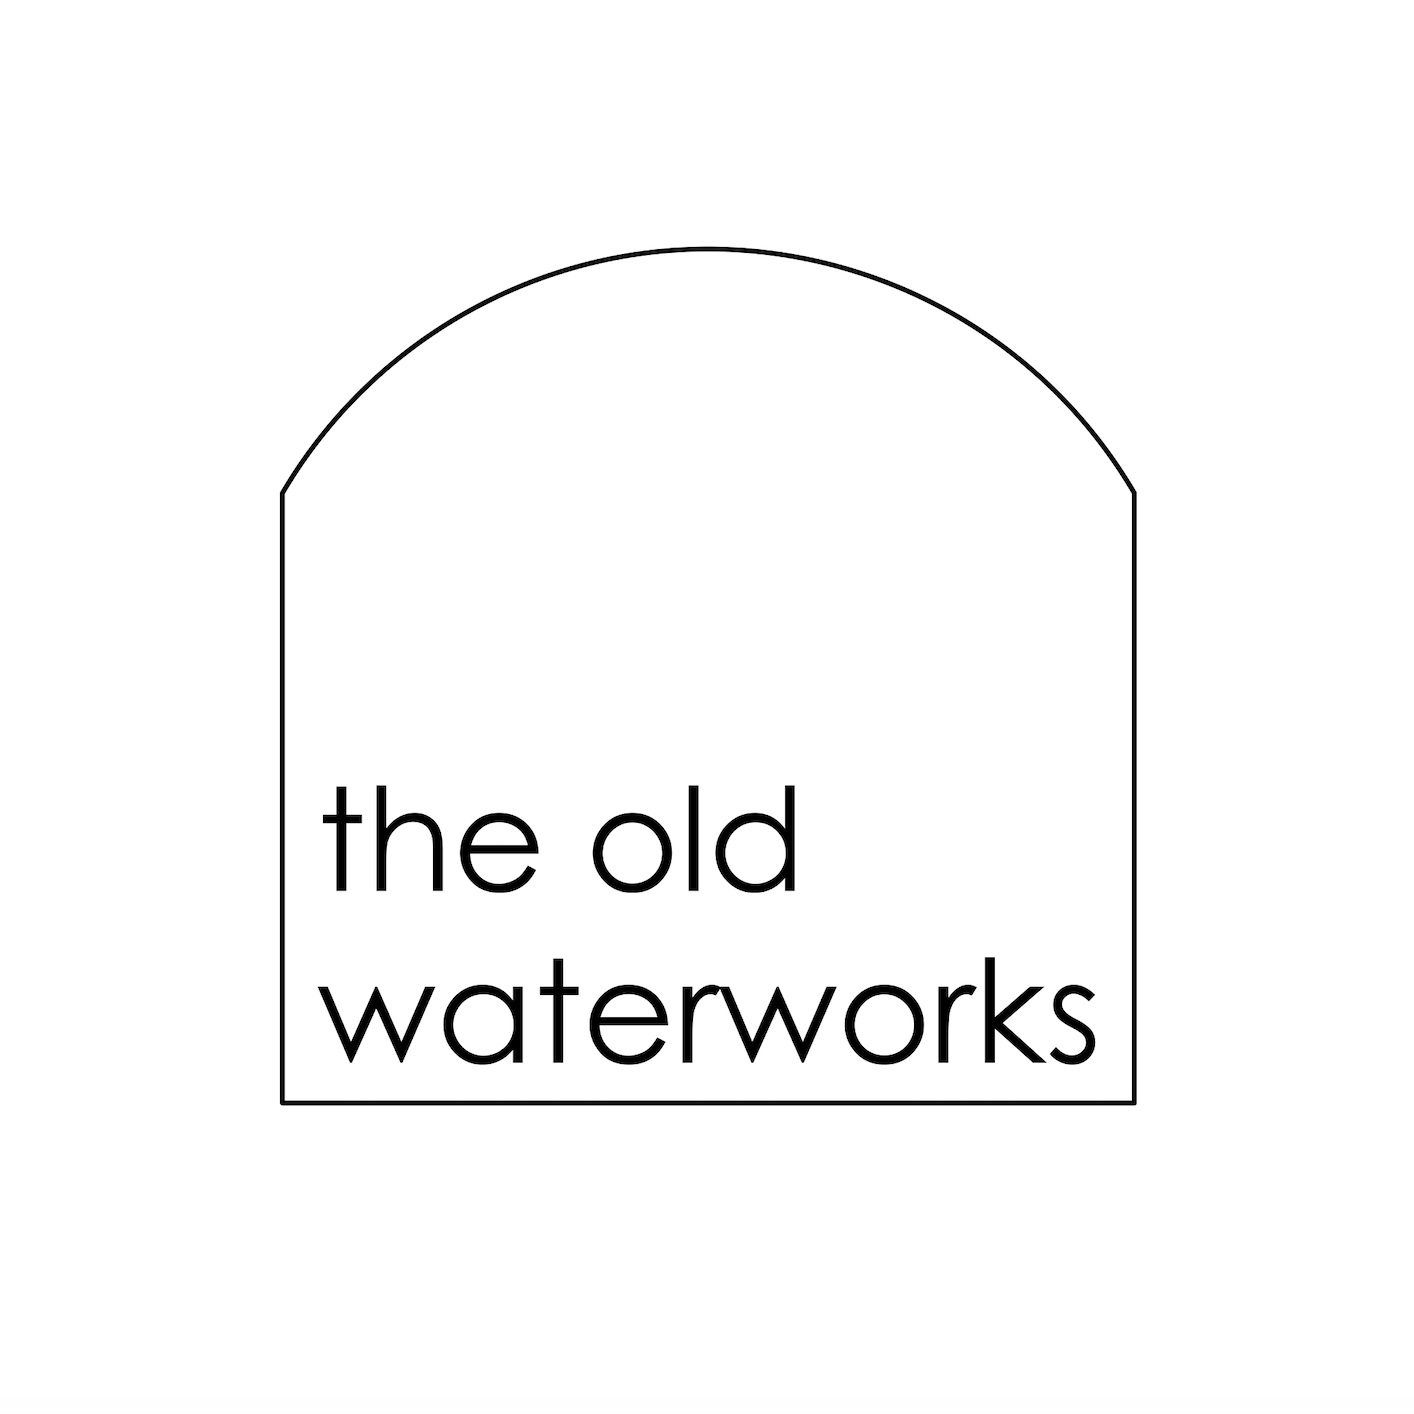 The Old Waterworks